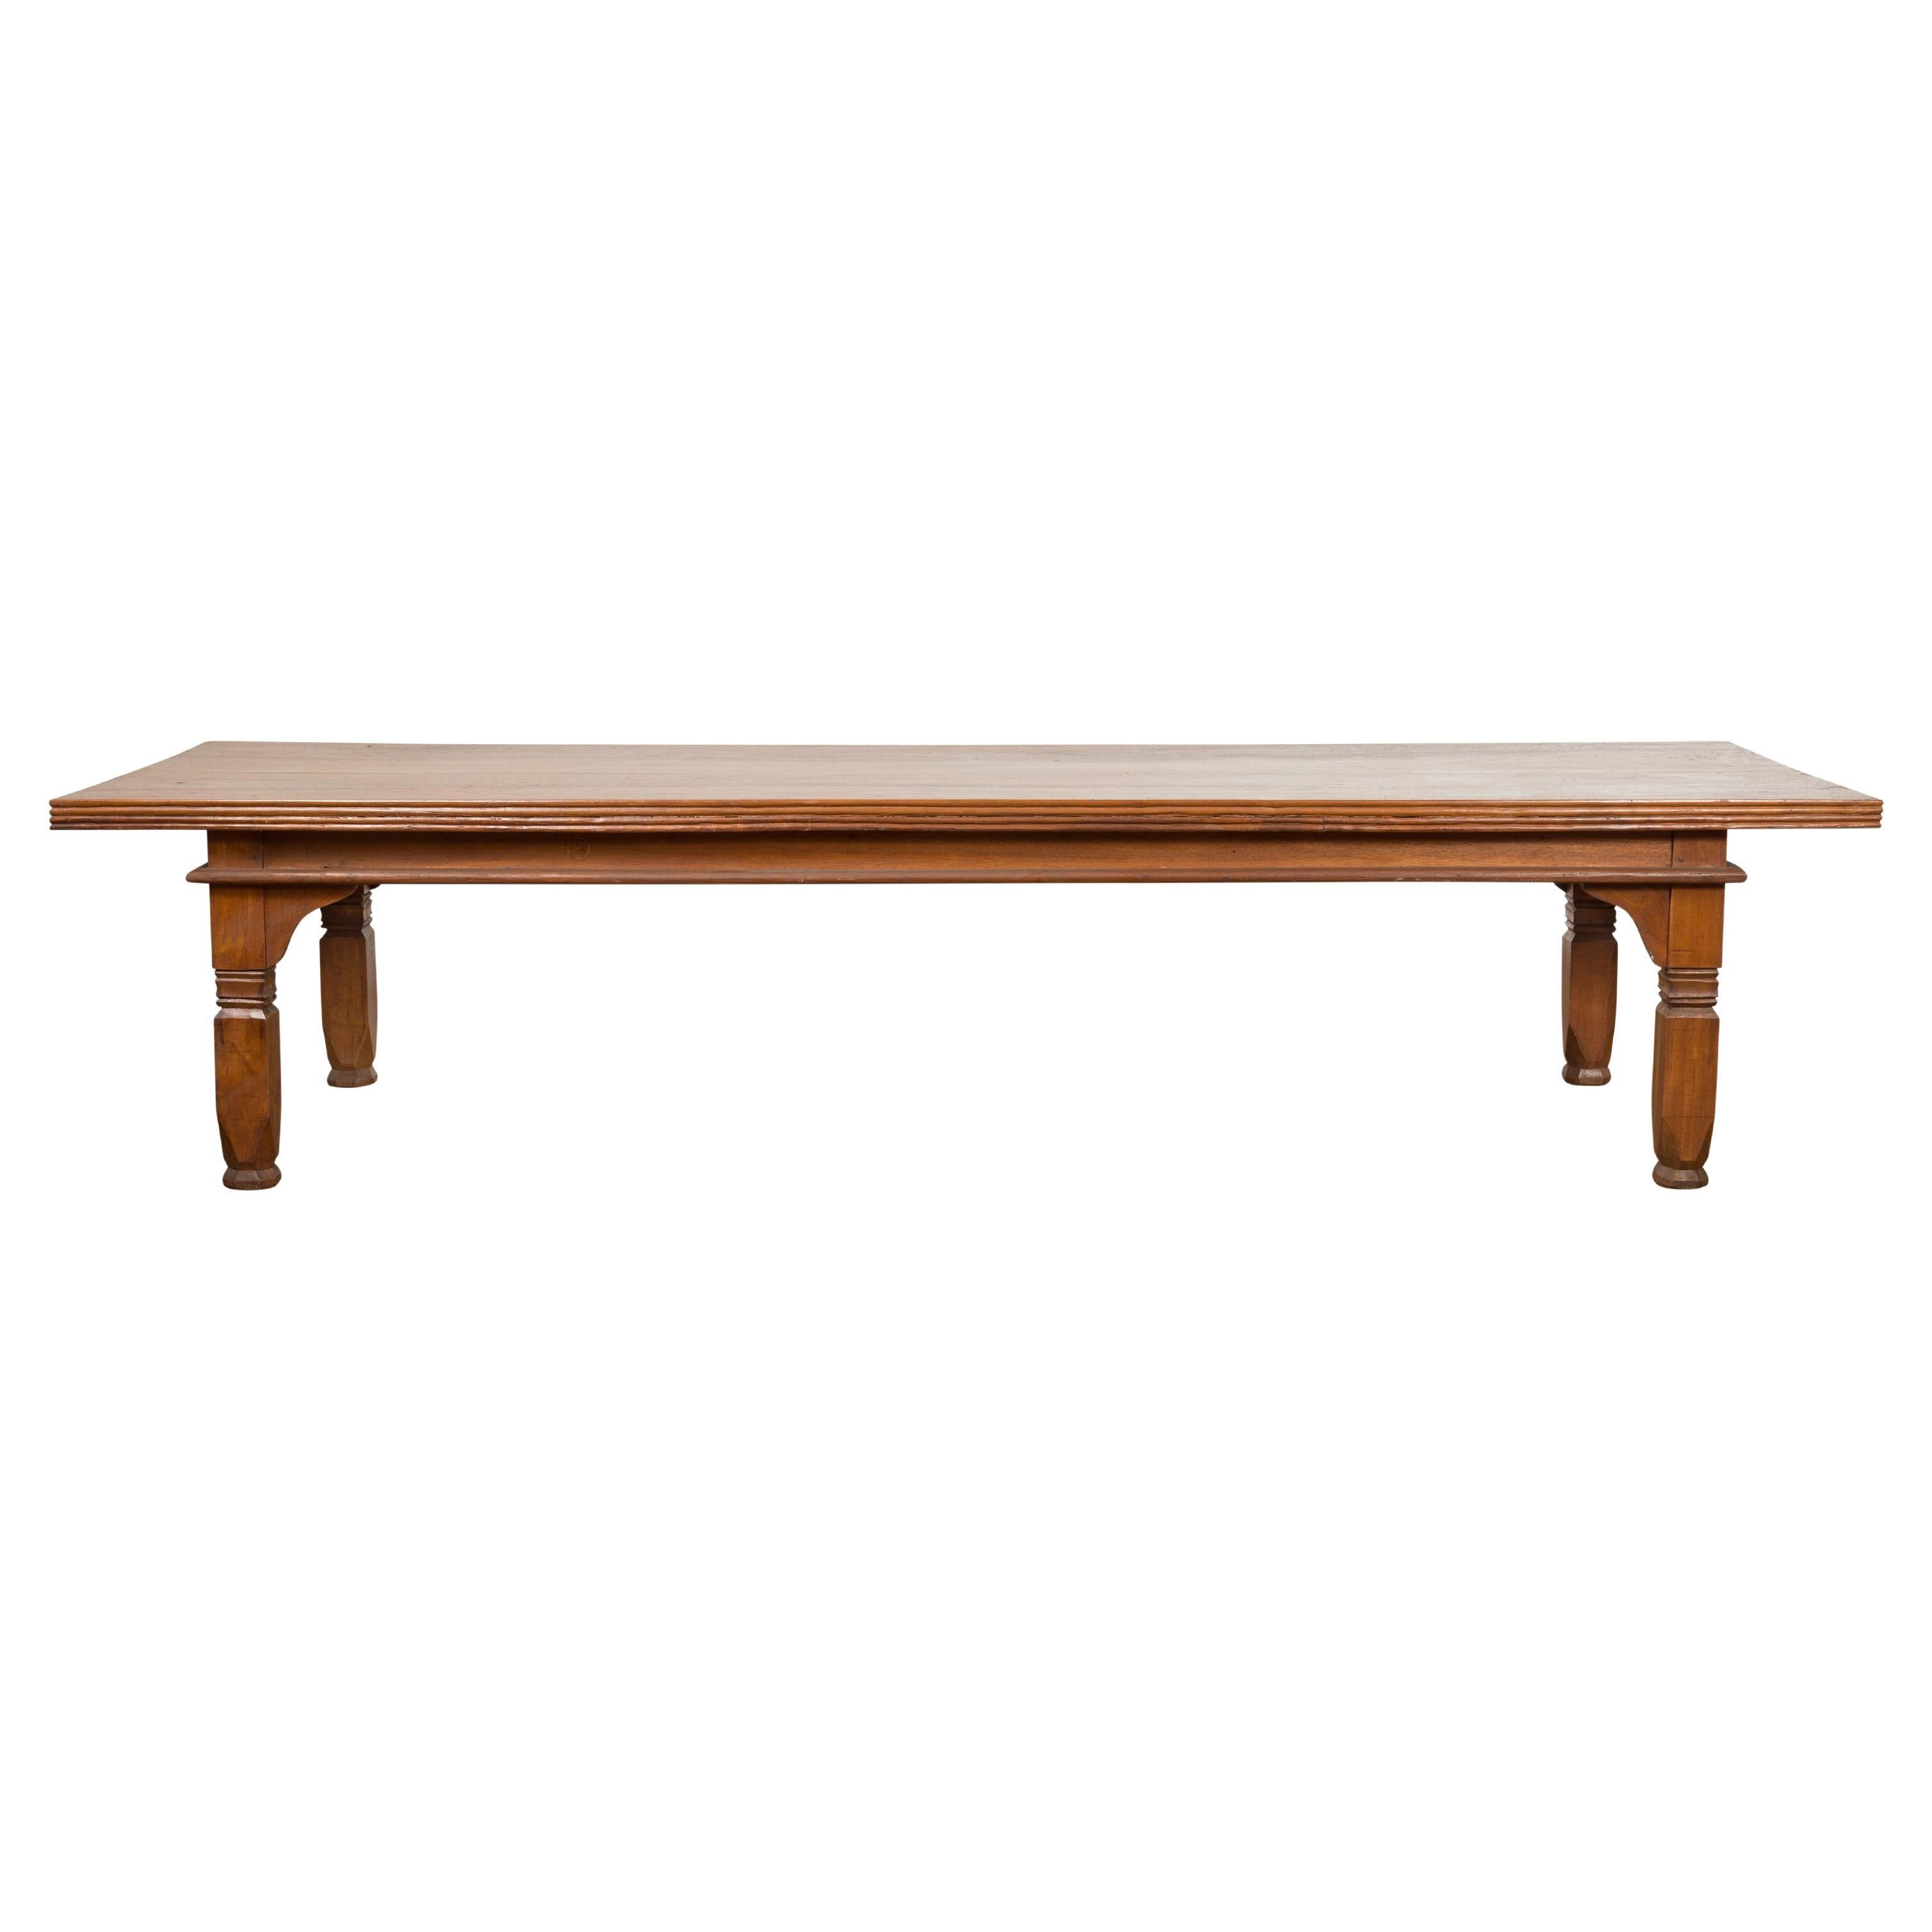 Oversized 19th Century Indonesian Coffee Table with Reeded Edge and Carved Legs